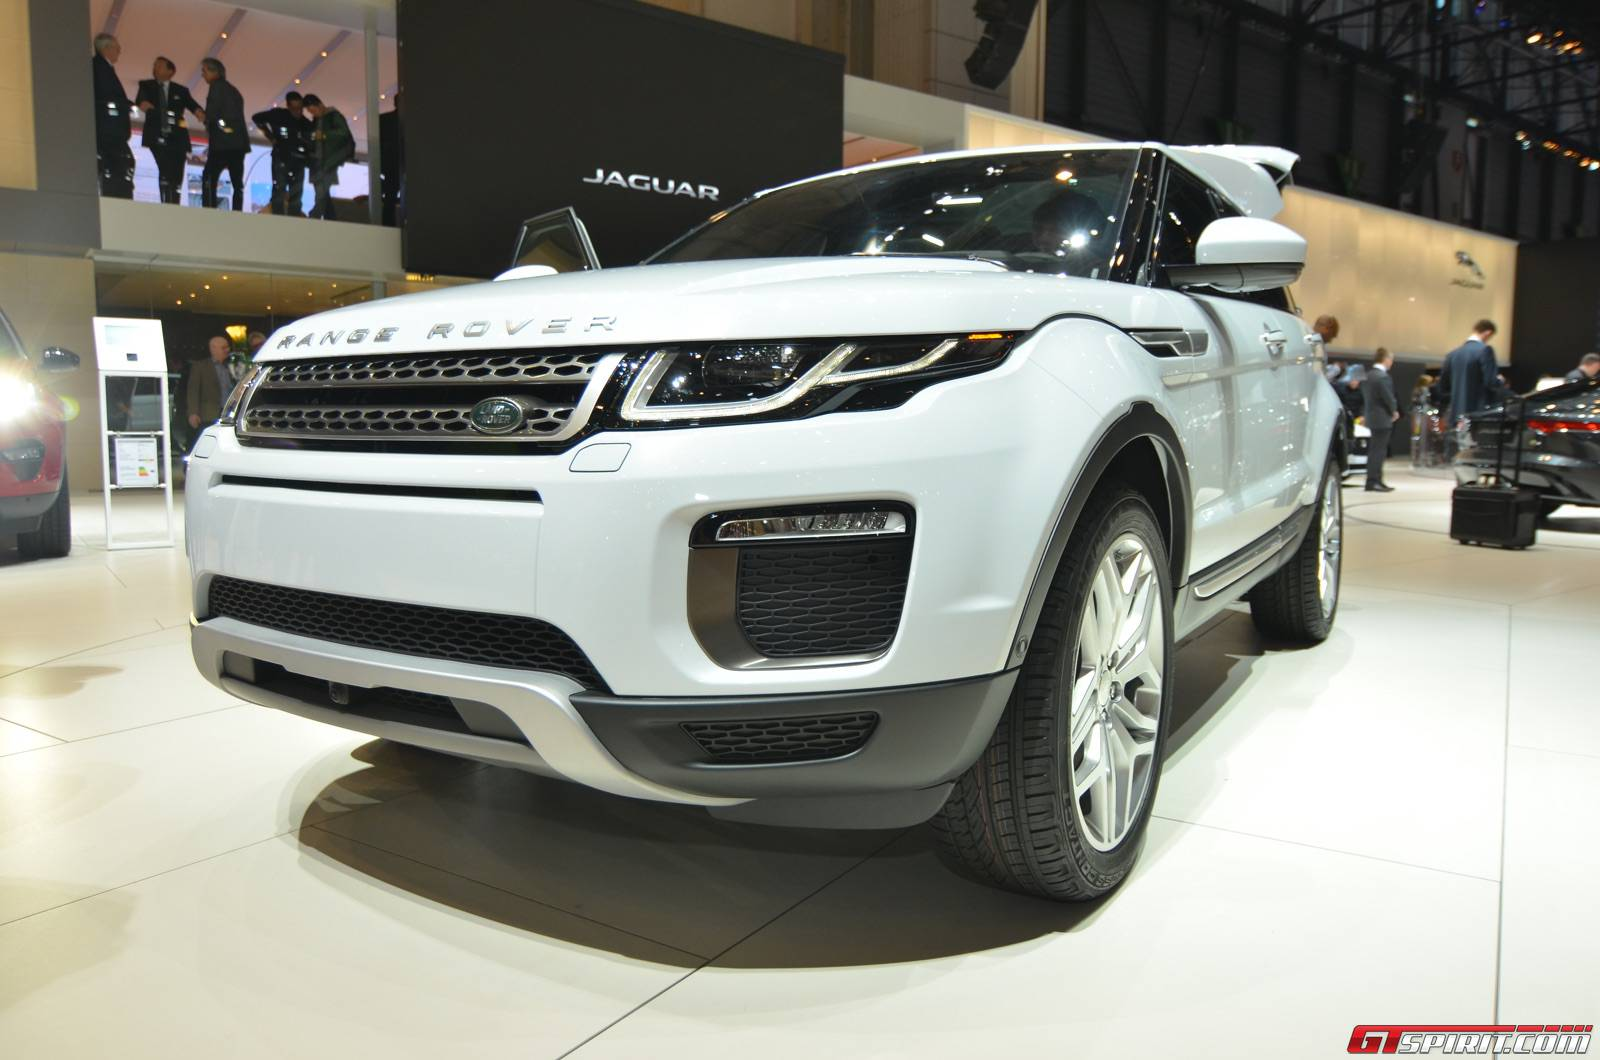 geneva 2015 range rover evoque facelift gtspirit. Black Bedroom Furniture Sets. Home Design Ideas